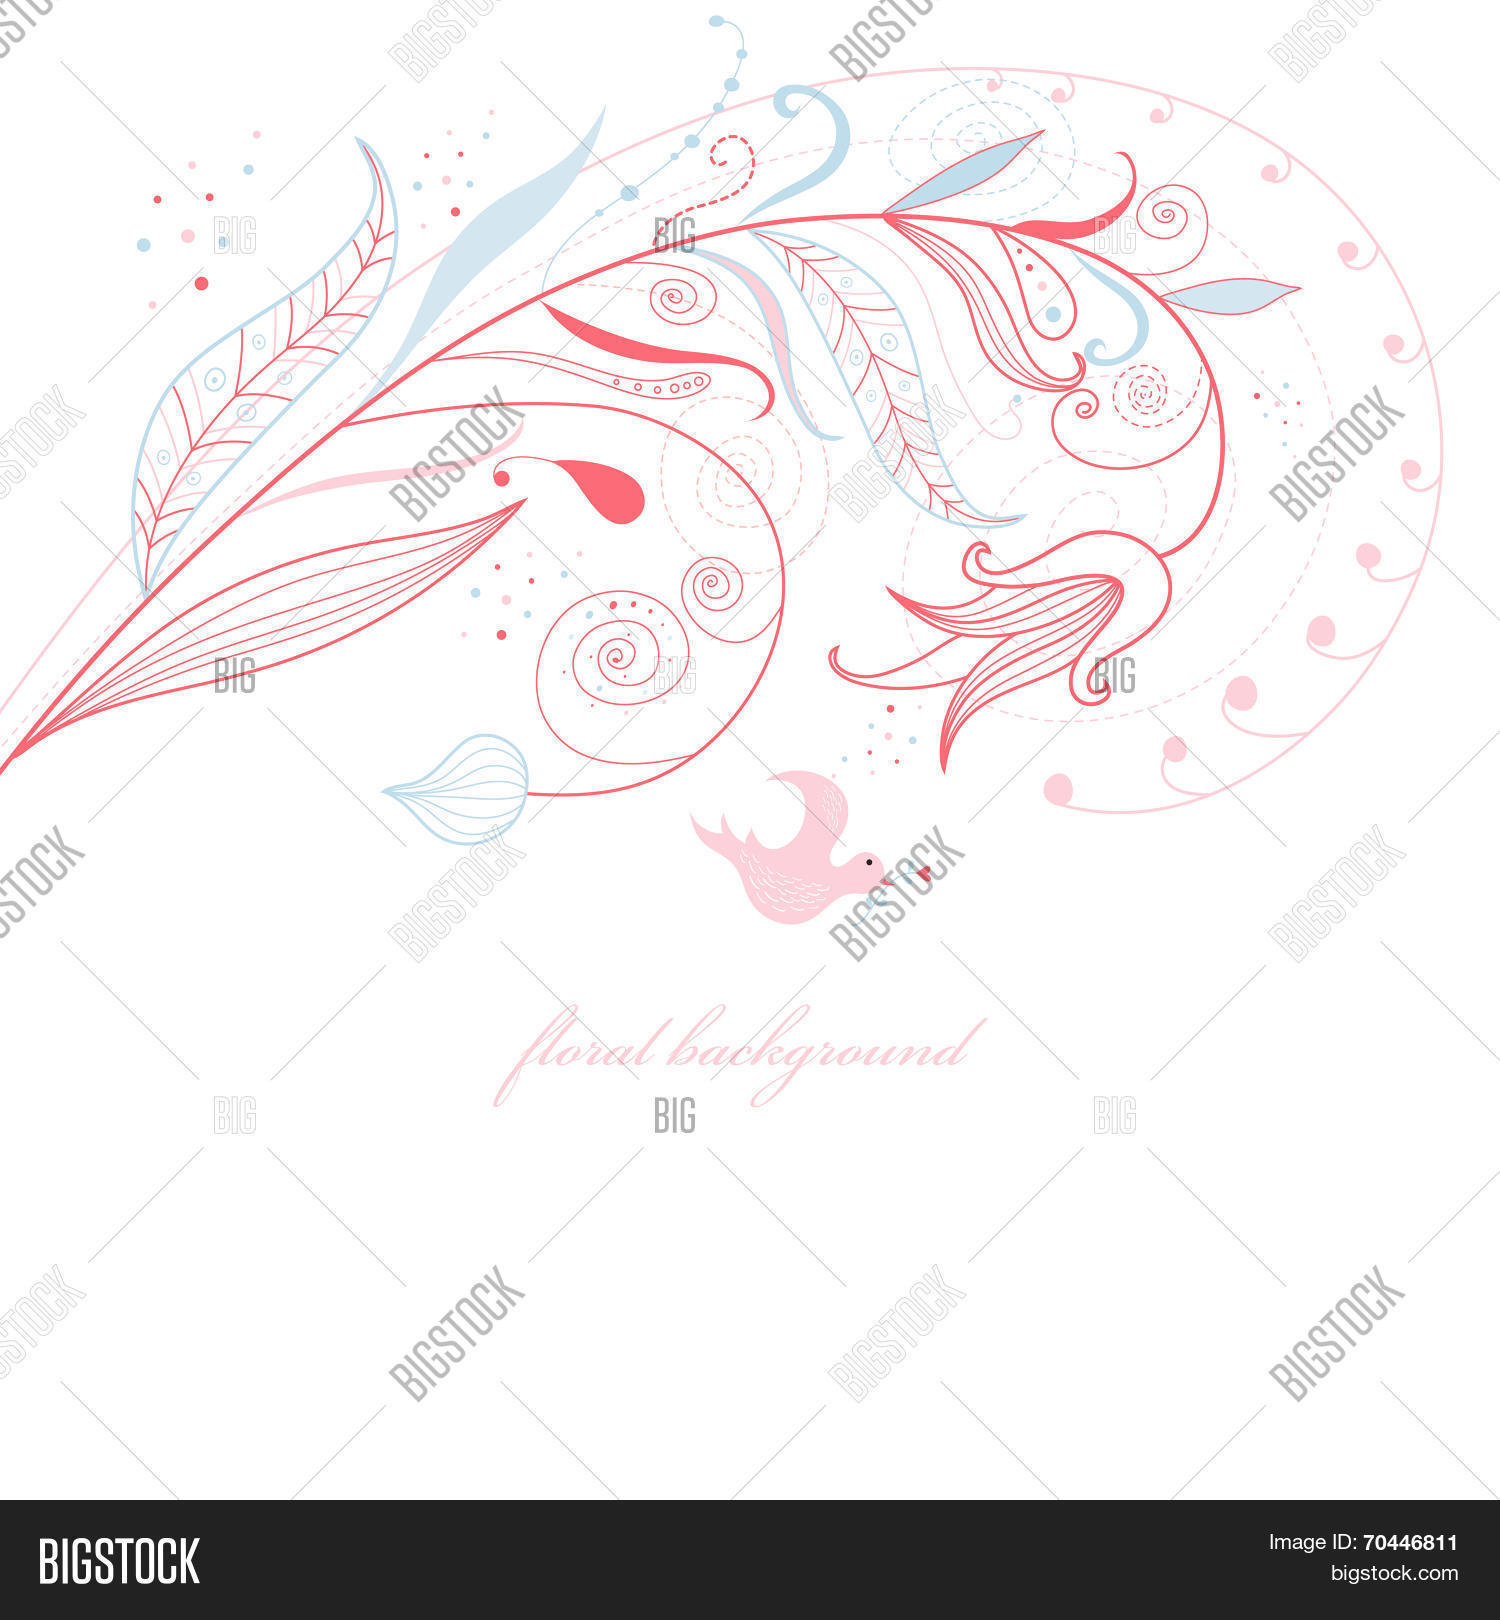 Beautiful designs image photo free trial bigstock beautiful designs of flowers and love birds drawing graphic ornament izmirmasajfo